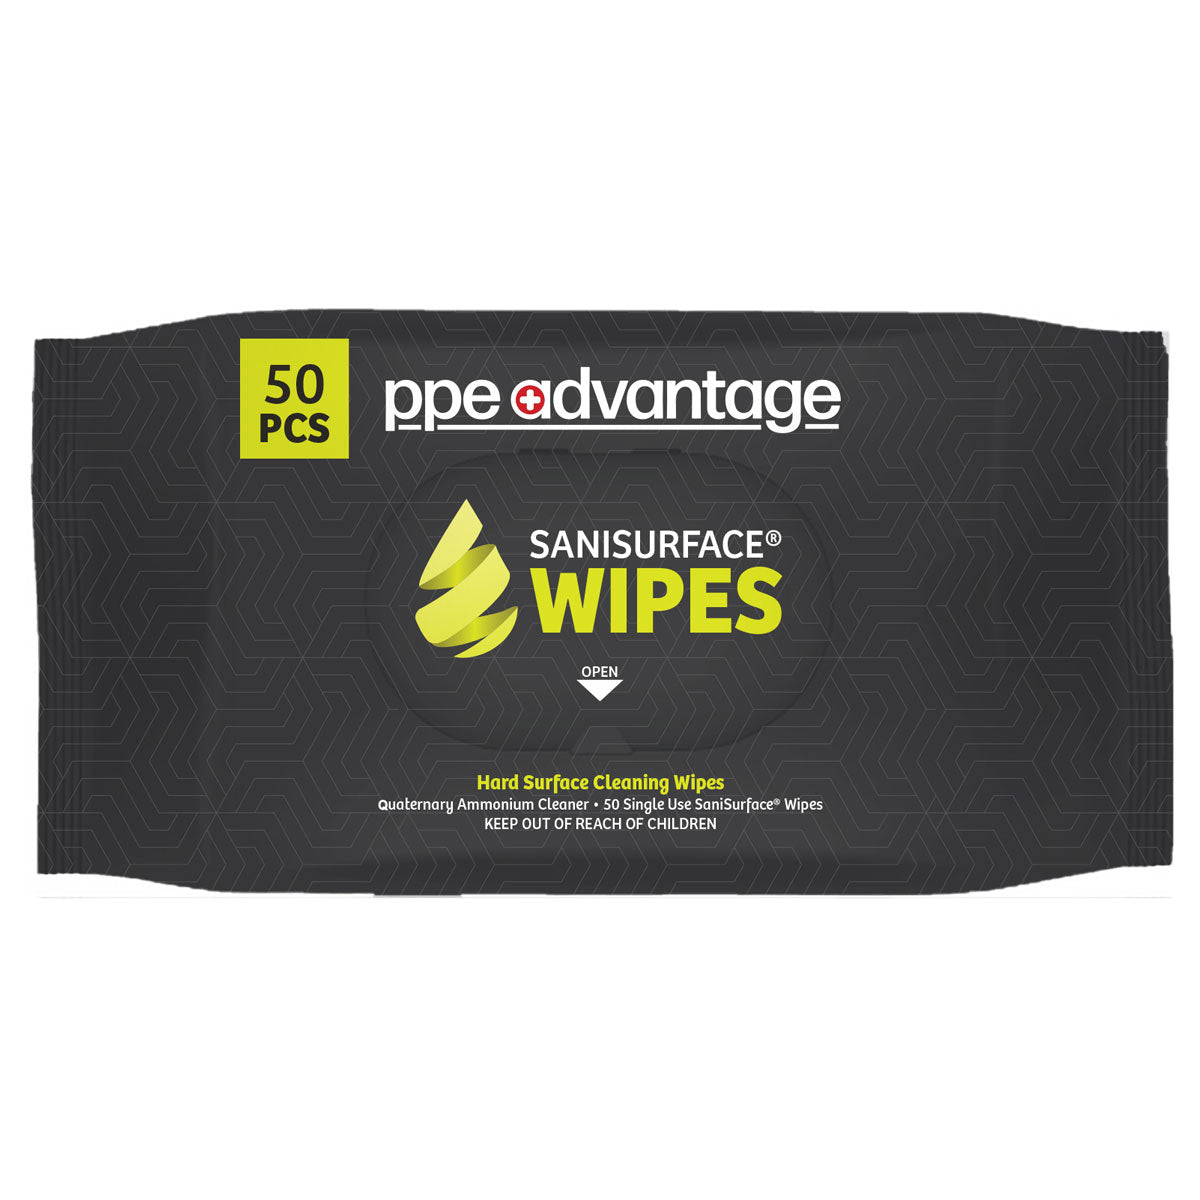 3032 PPE Advantage Sanisurface¨ Wipes (50) Bag - PPEA Branded Label EPA REGISTERED FACTORY | PPE Advantate powered by dS Product Hunters